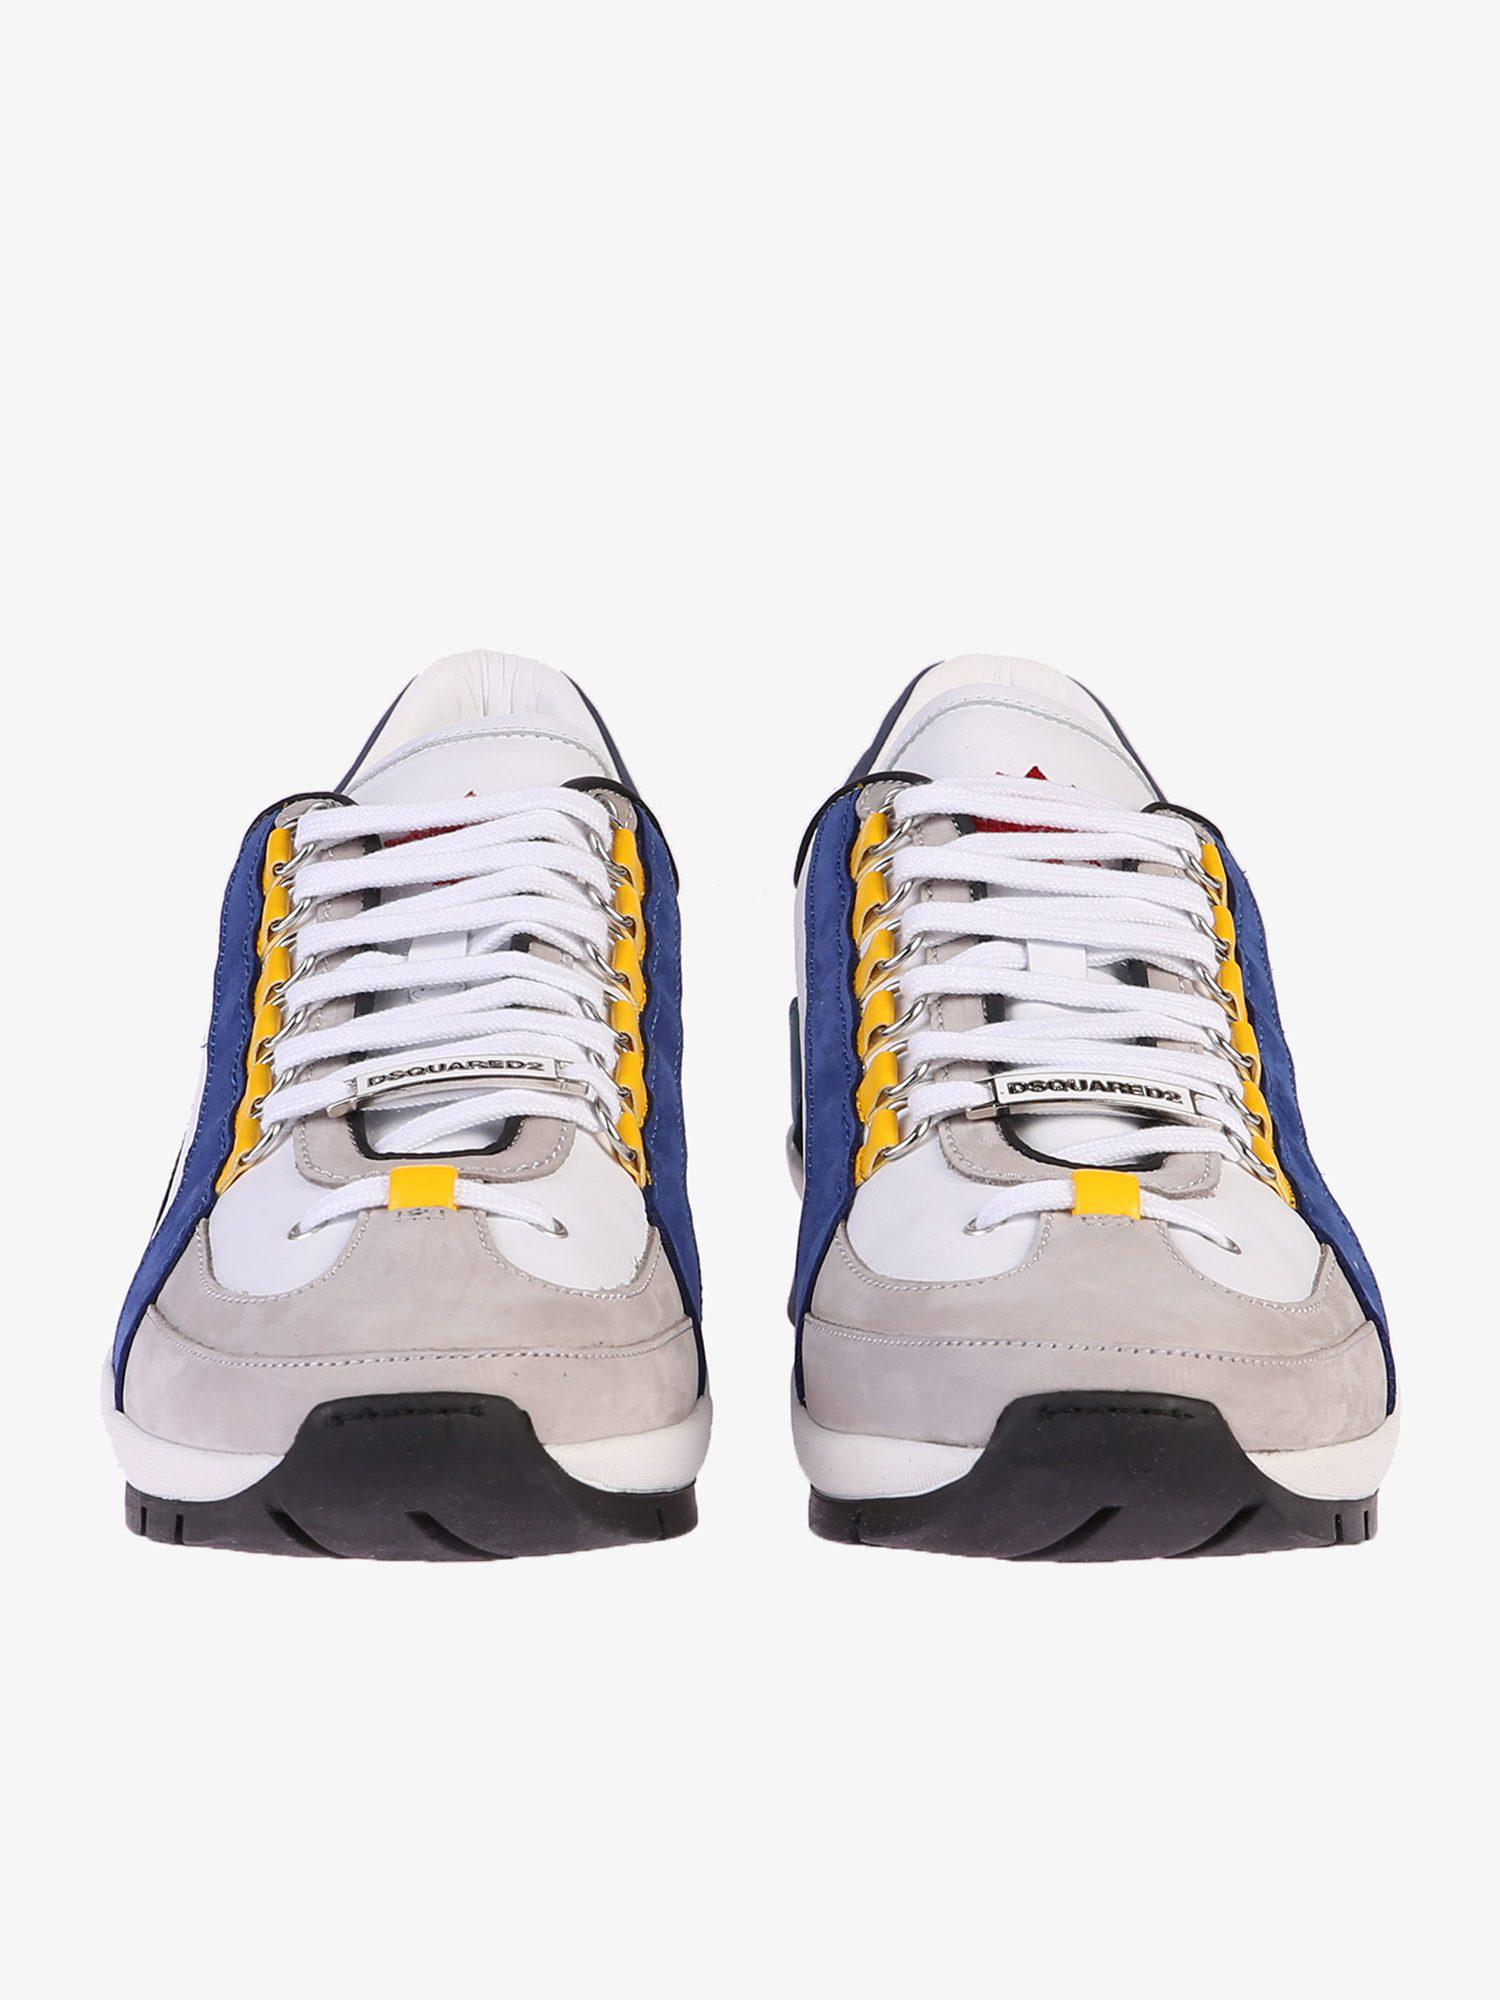 30a3168581200 DSquared² - Blue Leather Sneakers for Men - Lyst. View fullscreen